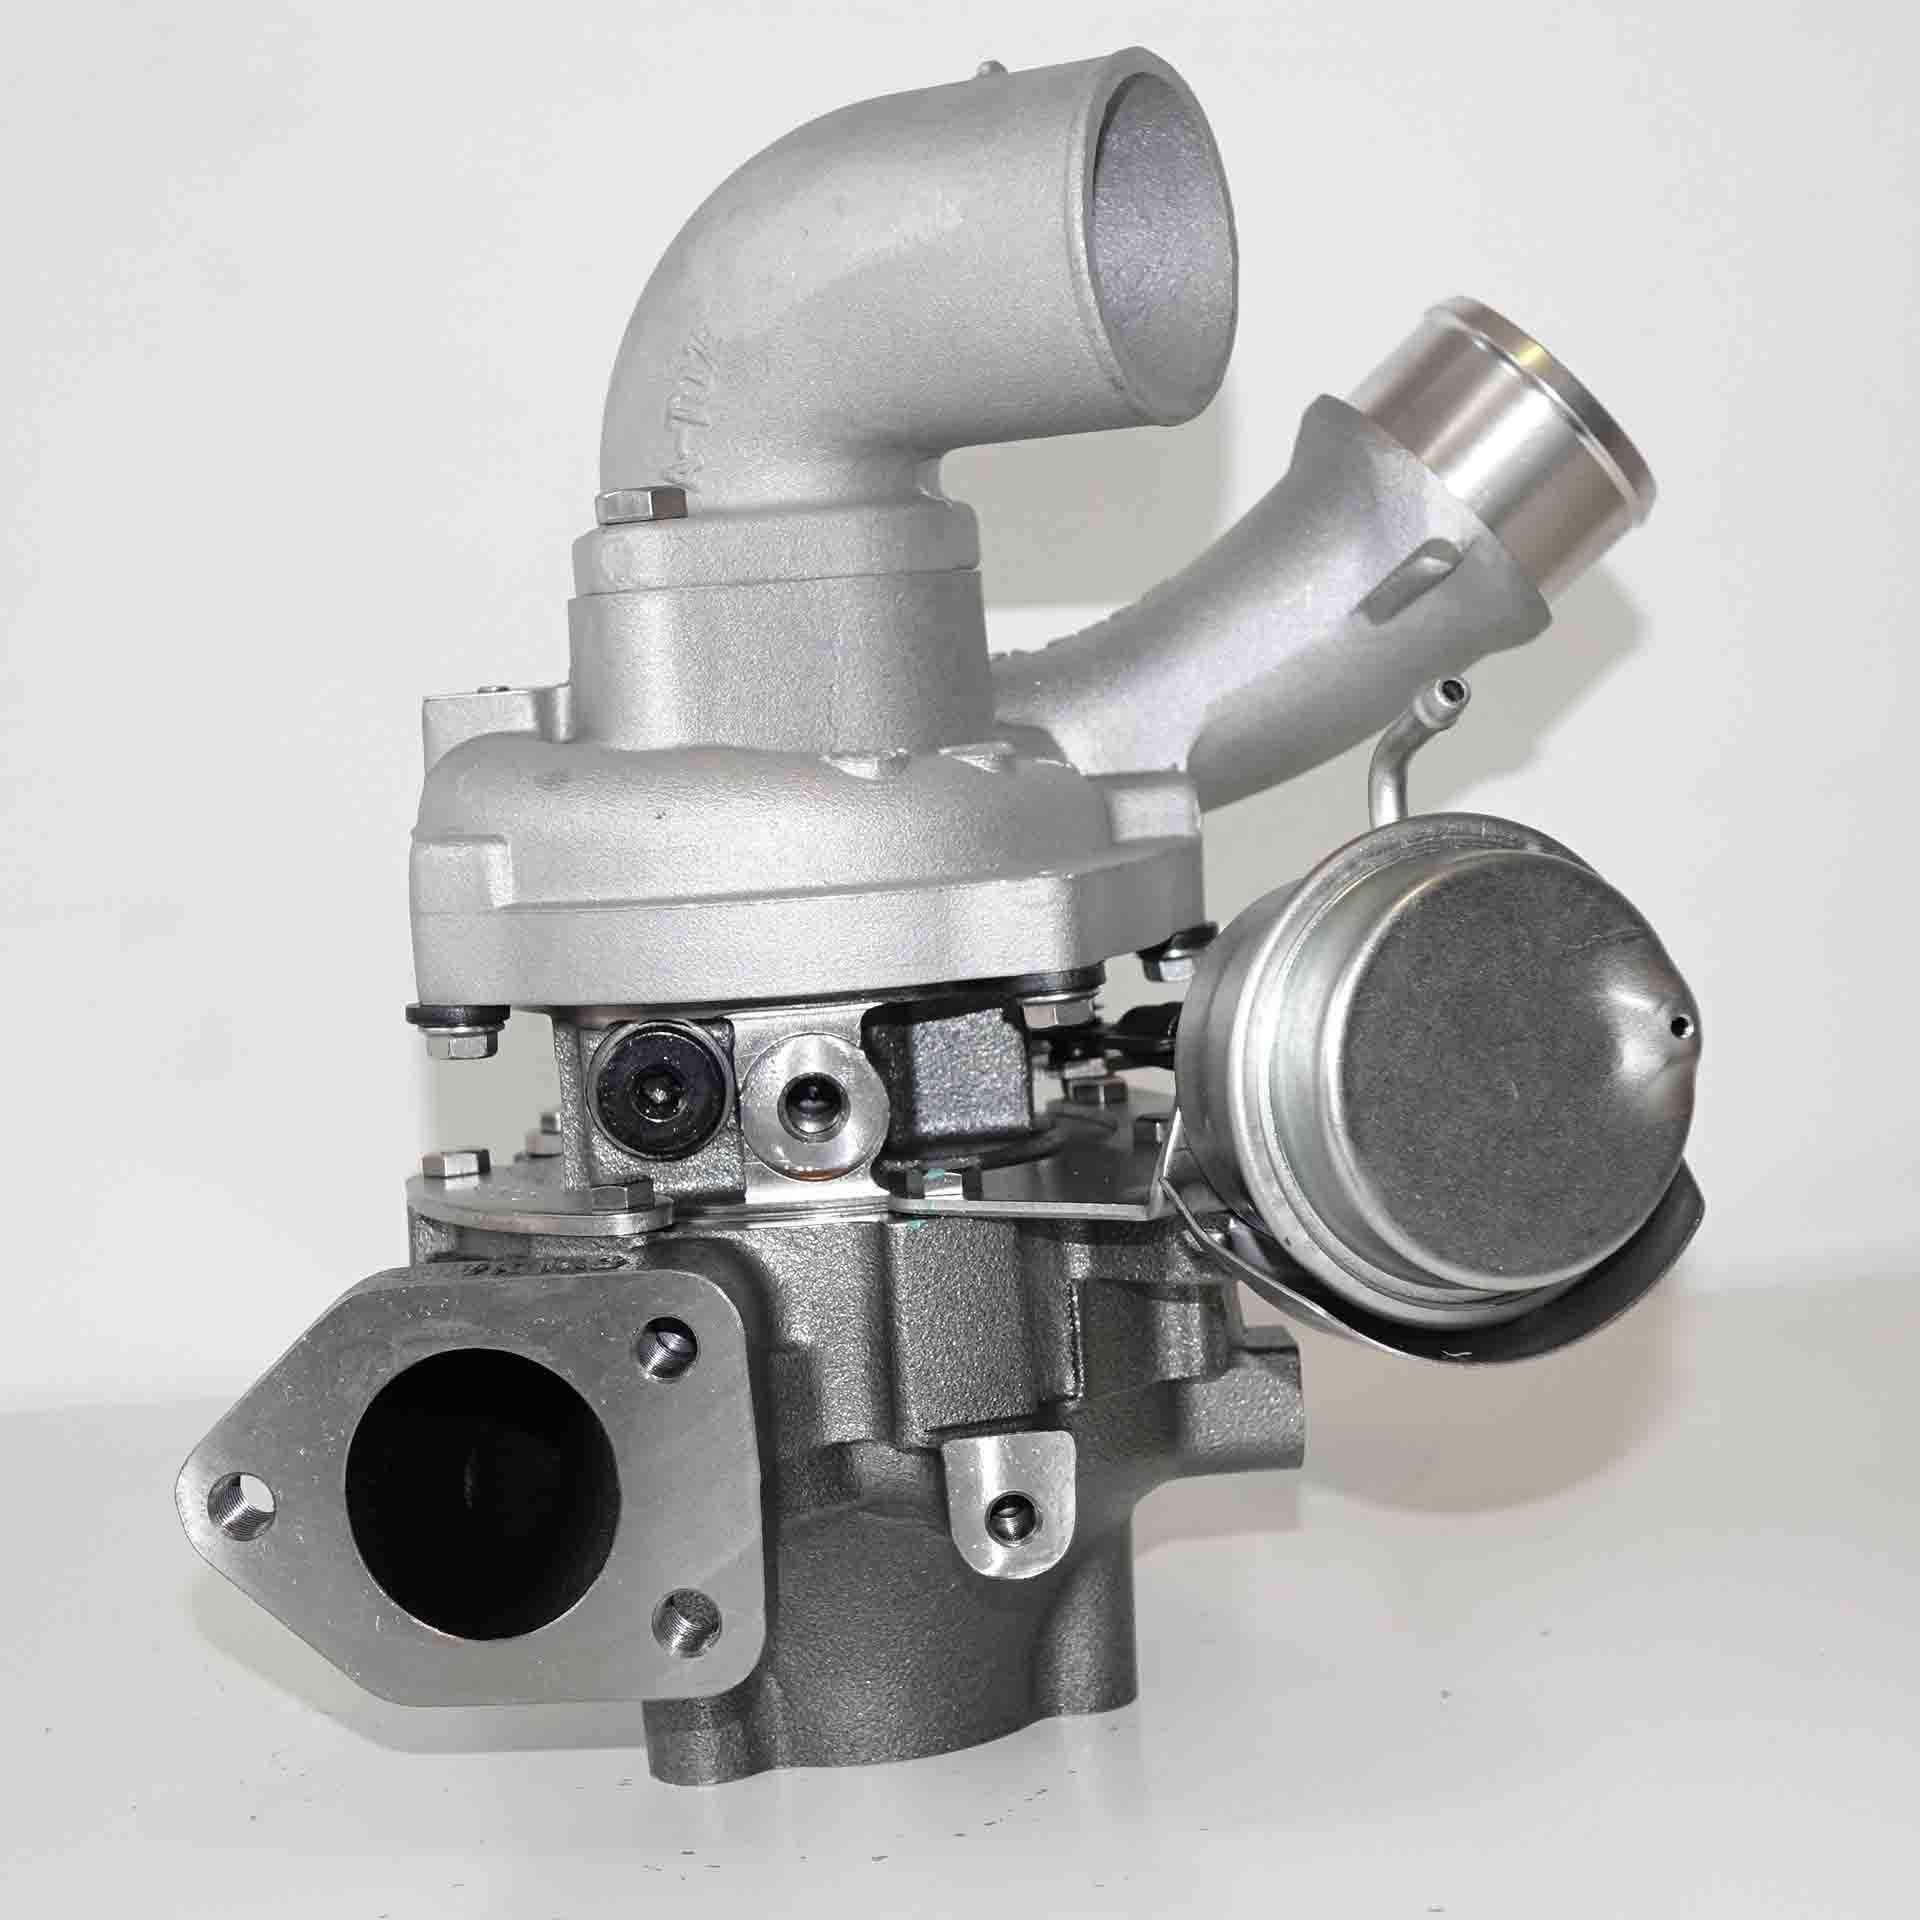 hyundai-iload-turbocharger-faults-imax-k03-28200-4A480-diesel